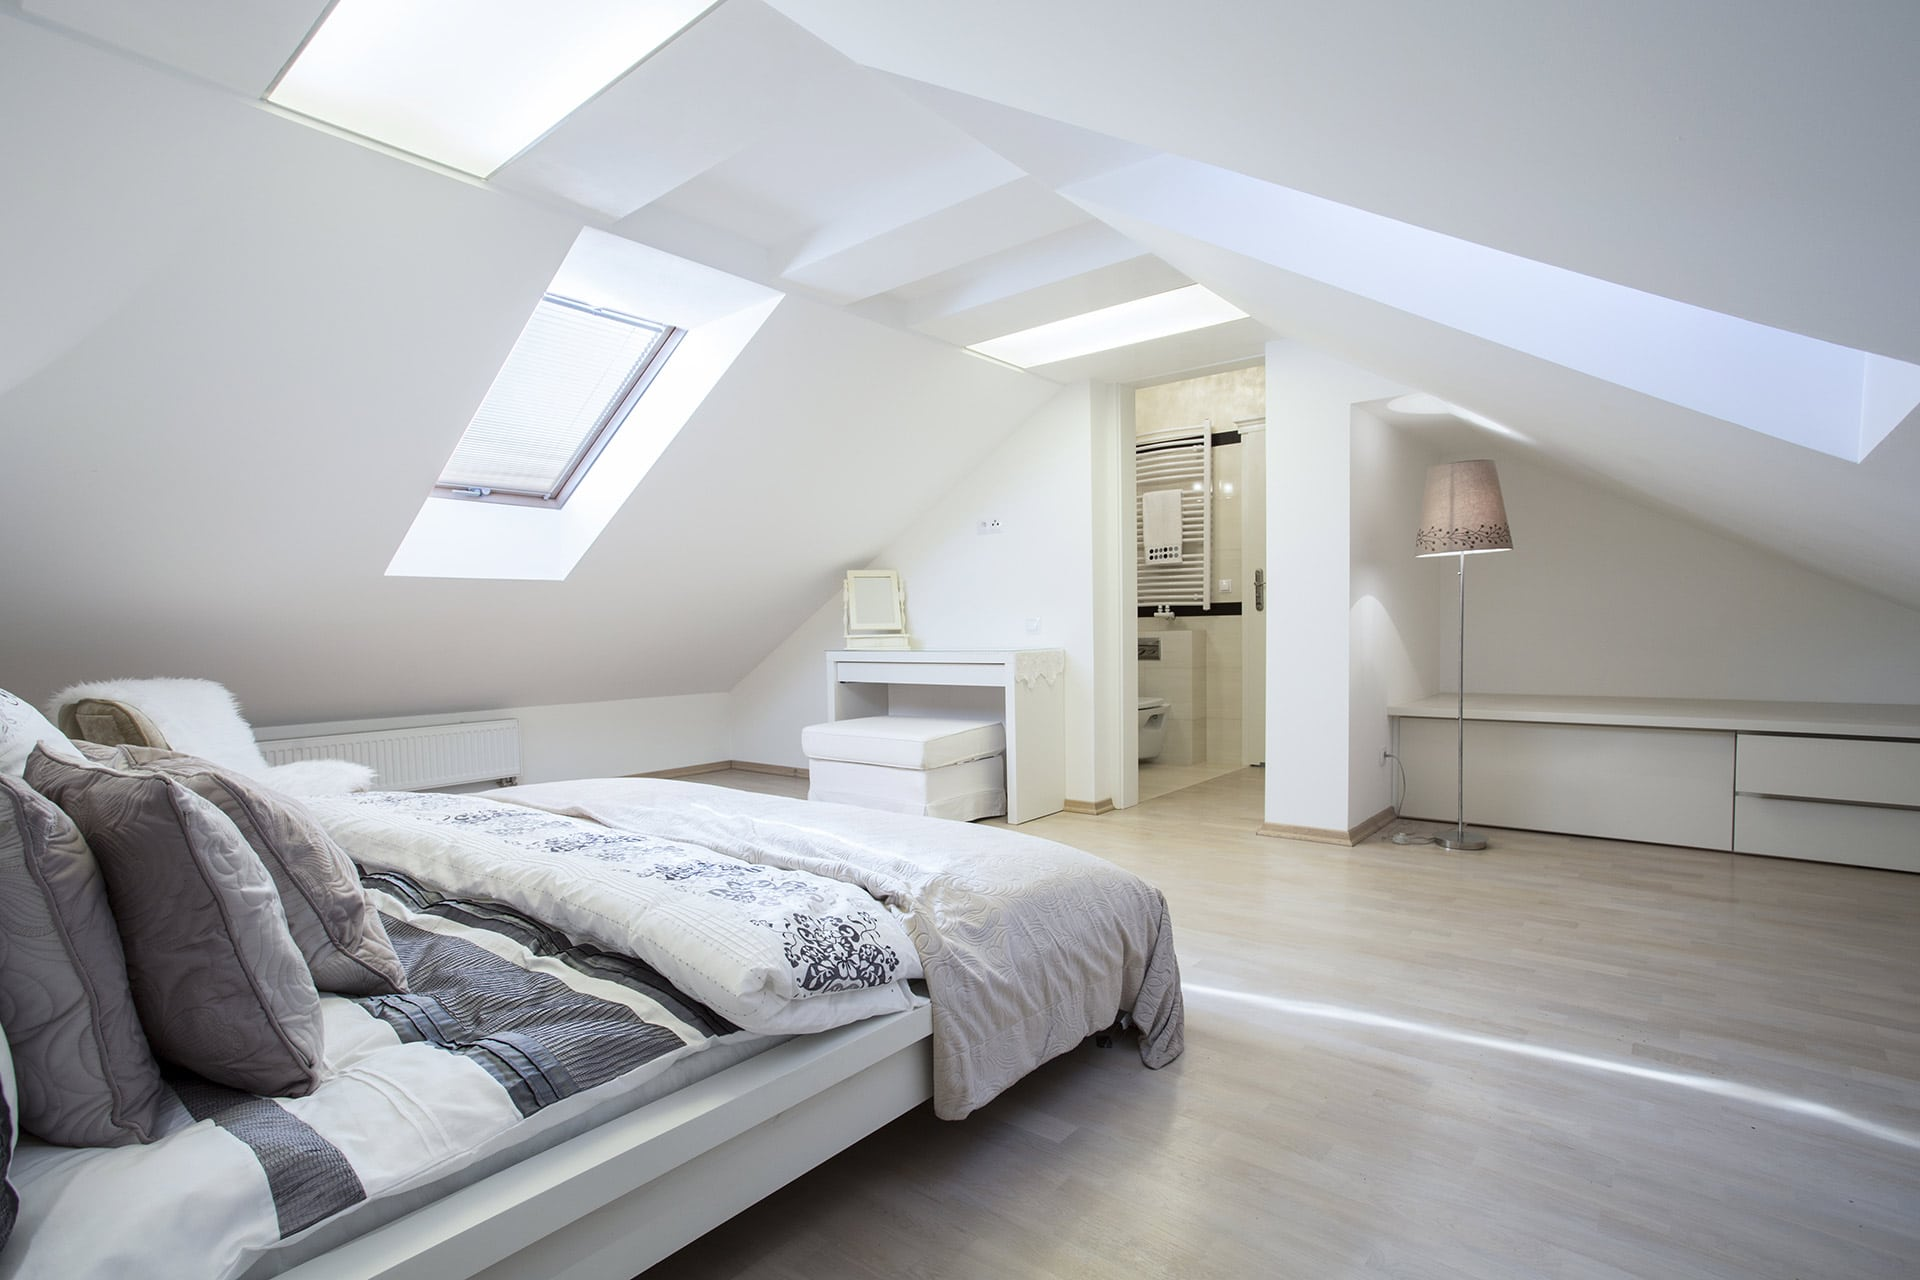 SURREY LOFT CONVERSIONS - COUNTY CONVERSIONS THE LEADING LOFT CONVERSION IN SOUTH EAST